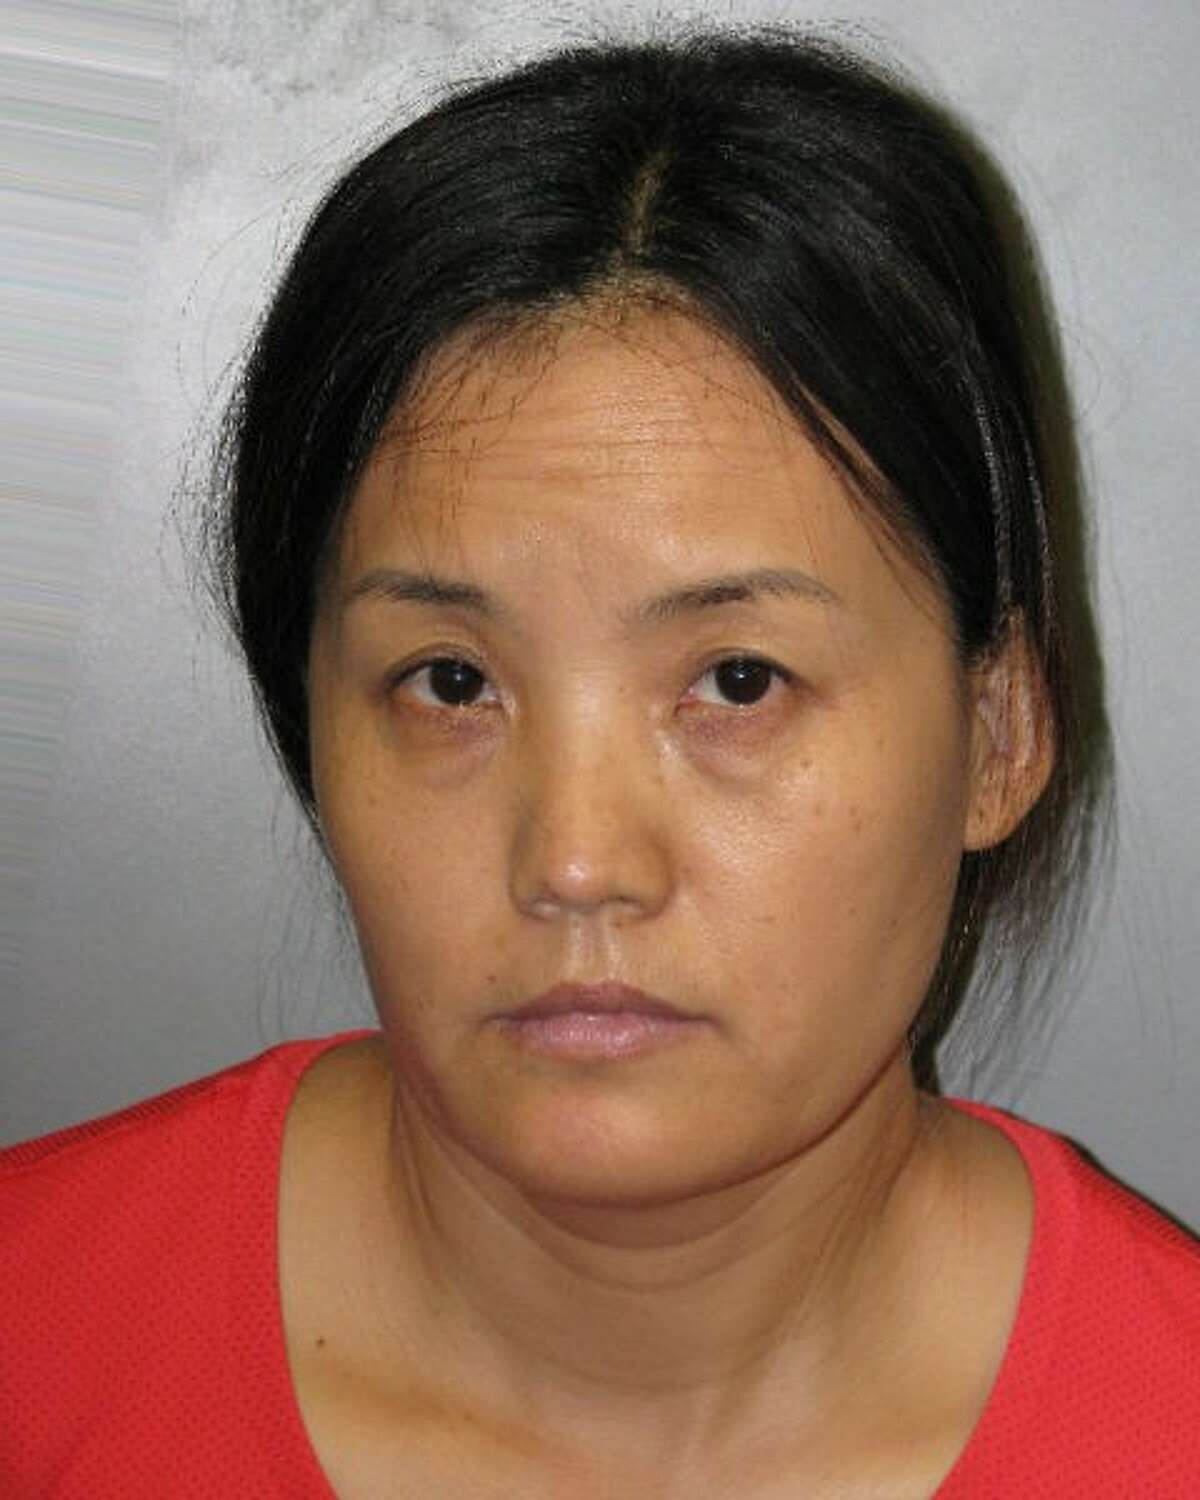 Hong Su, 46, was arrested by theHarris County Precinct 4 Constable's Office on June 6, 2017 and charged with prostitution.